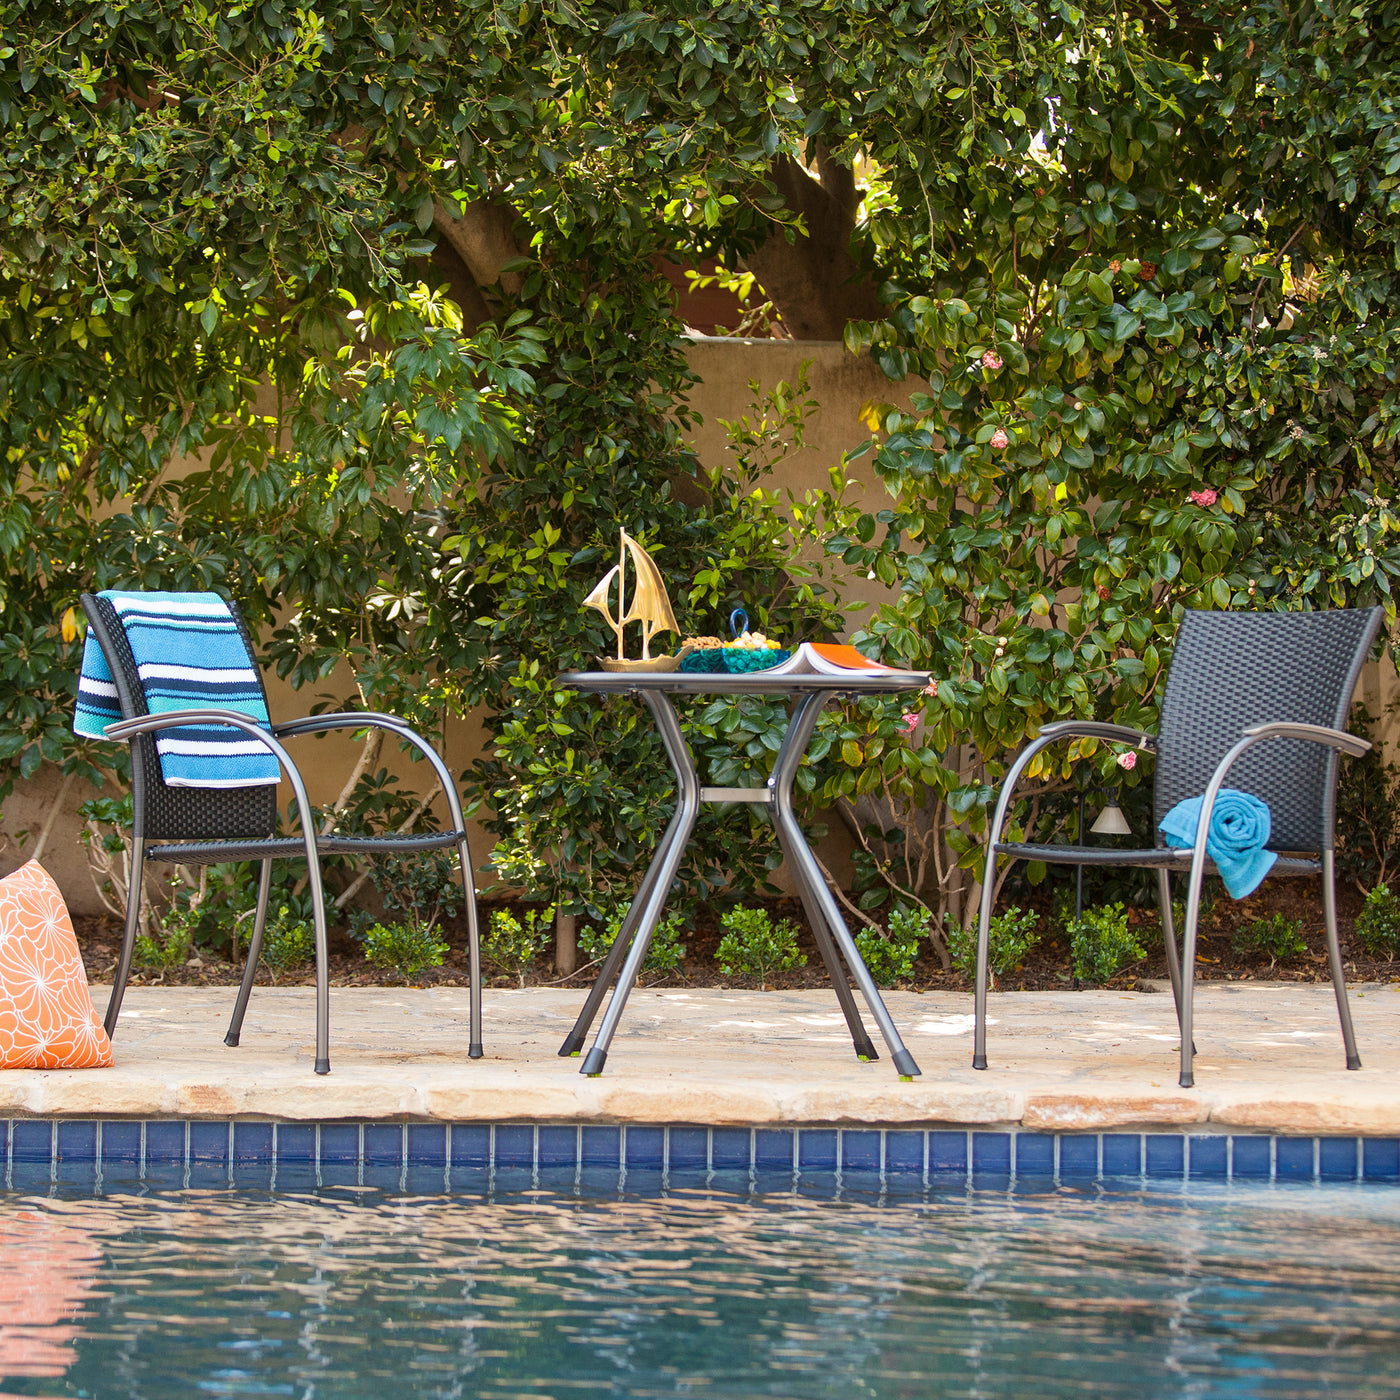 Ludwig 3 Piece Patio Bistro Set with Stacking Chairs Square Table